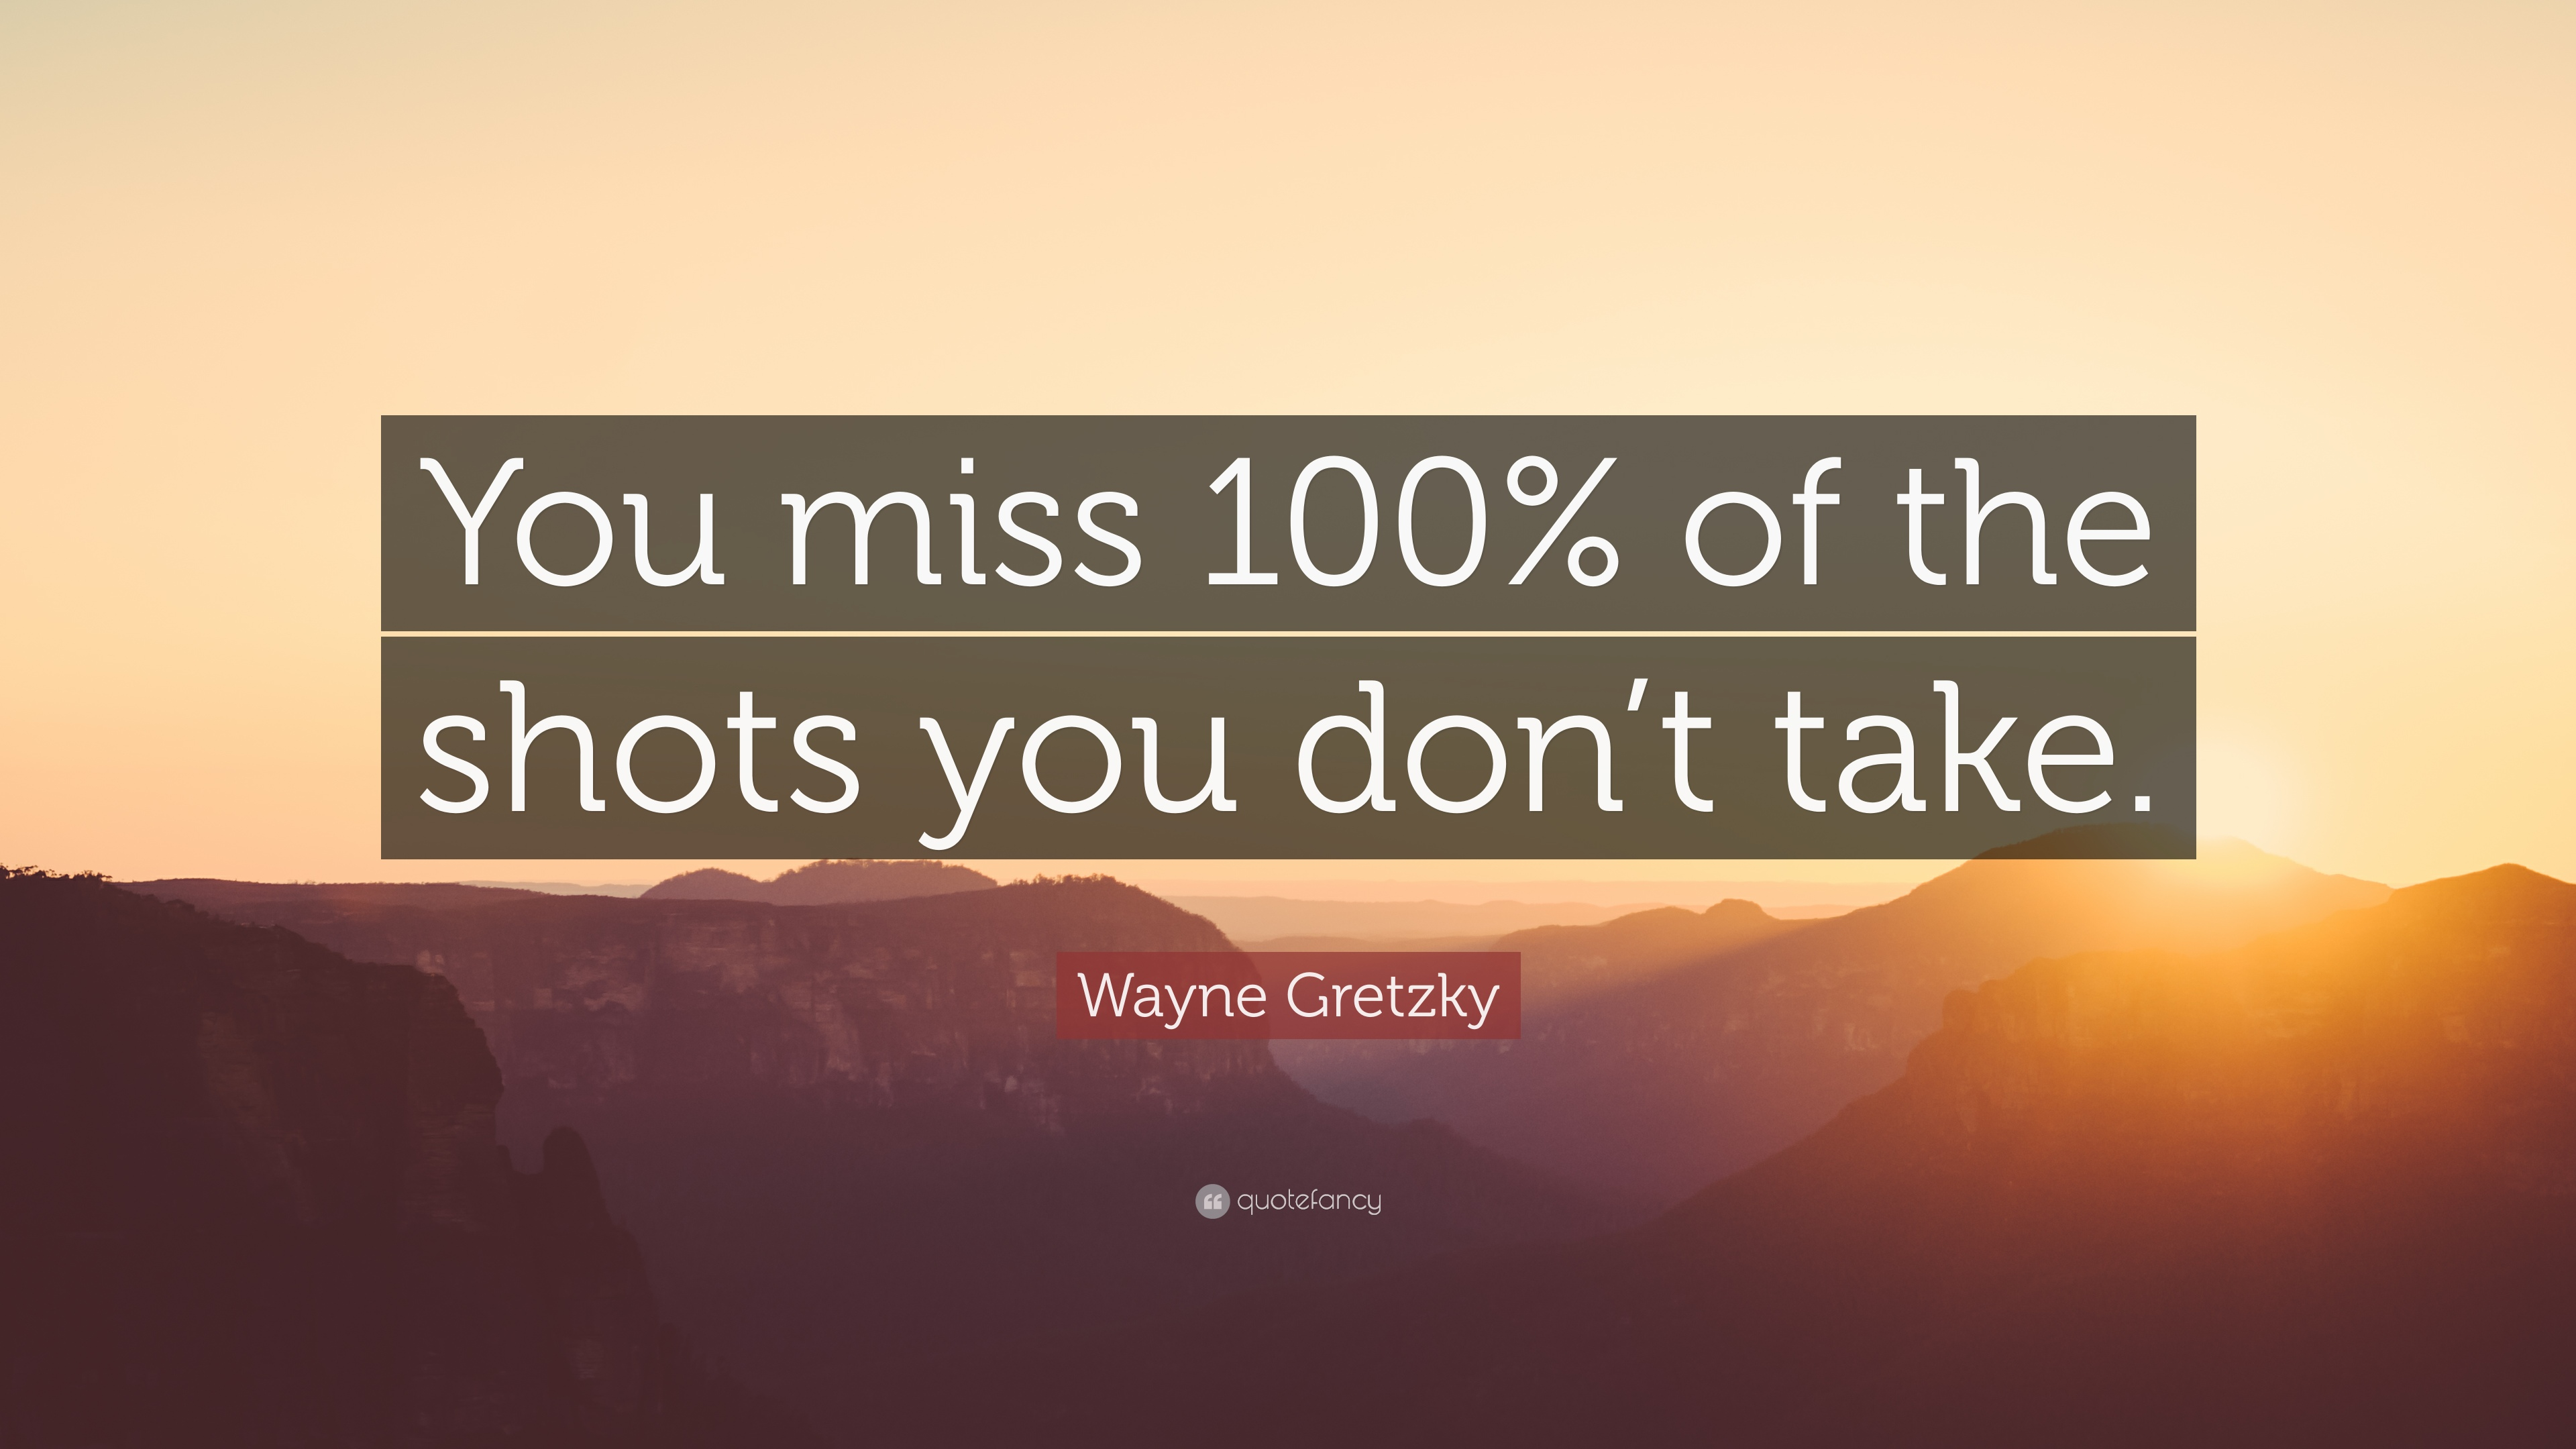 Chances Quotes Wallpaper Wayne Gretzky Quote You Miss 100 Of The Shots You Don T